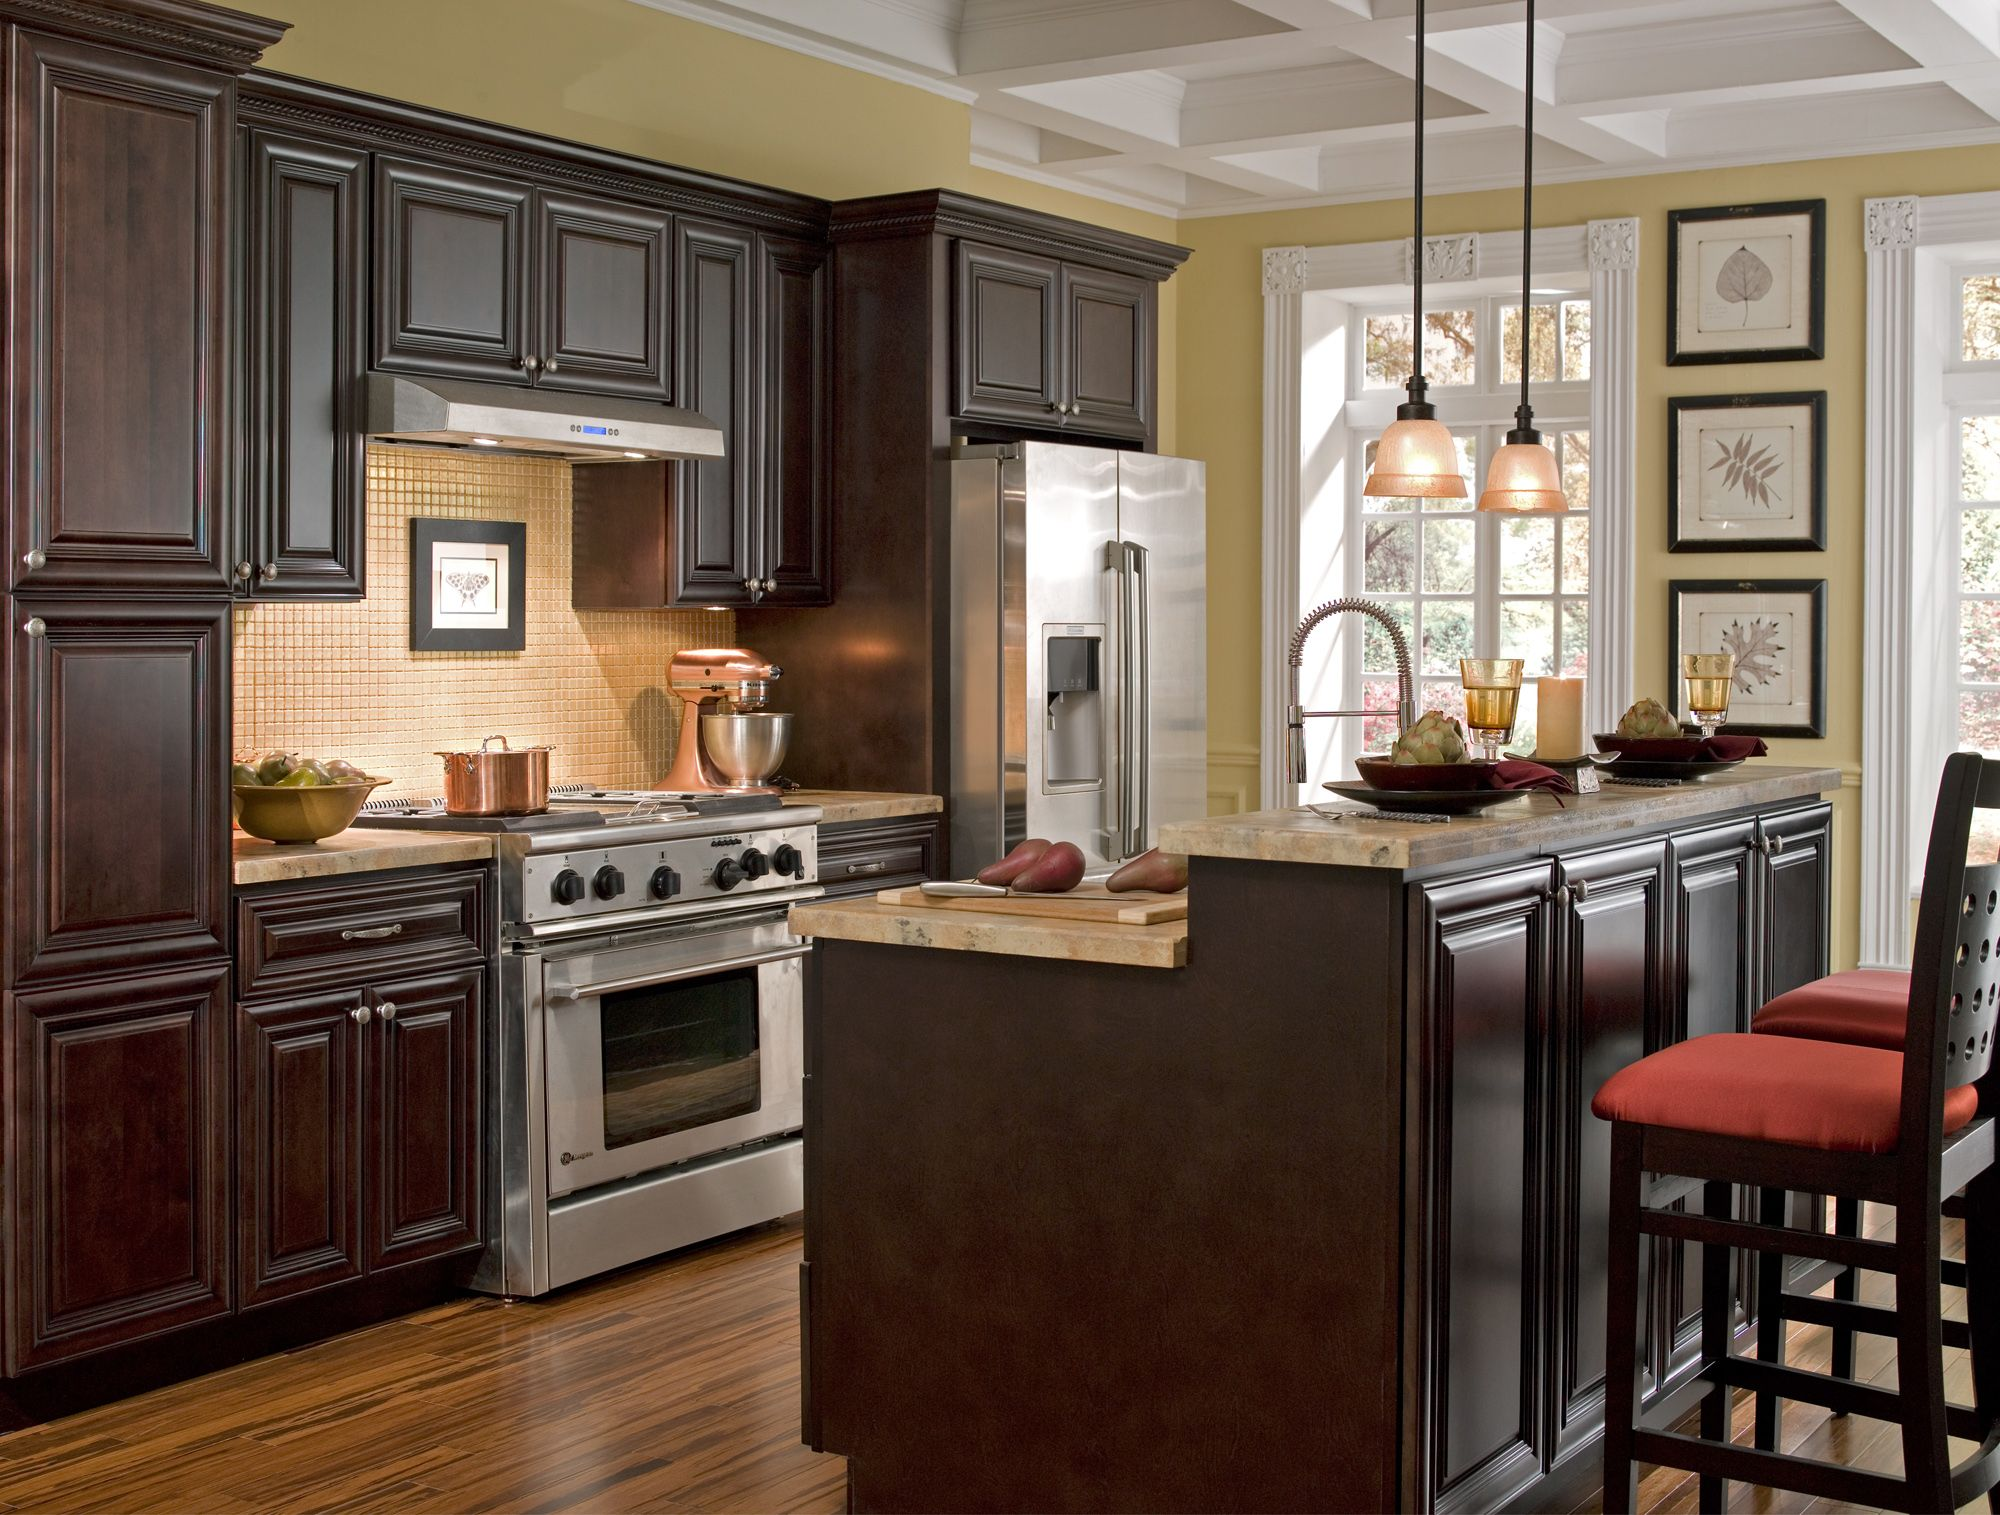 Findley & Myers Palm Beach Dark Chocolate Kitchen features solid